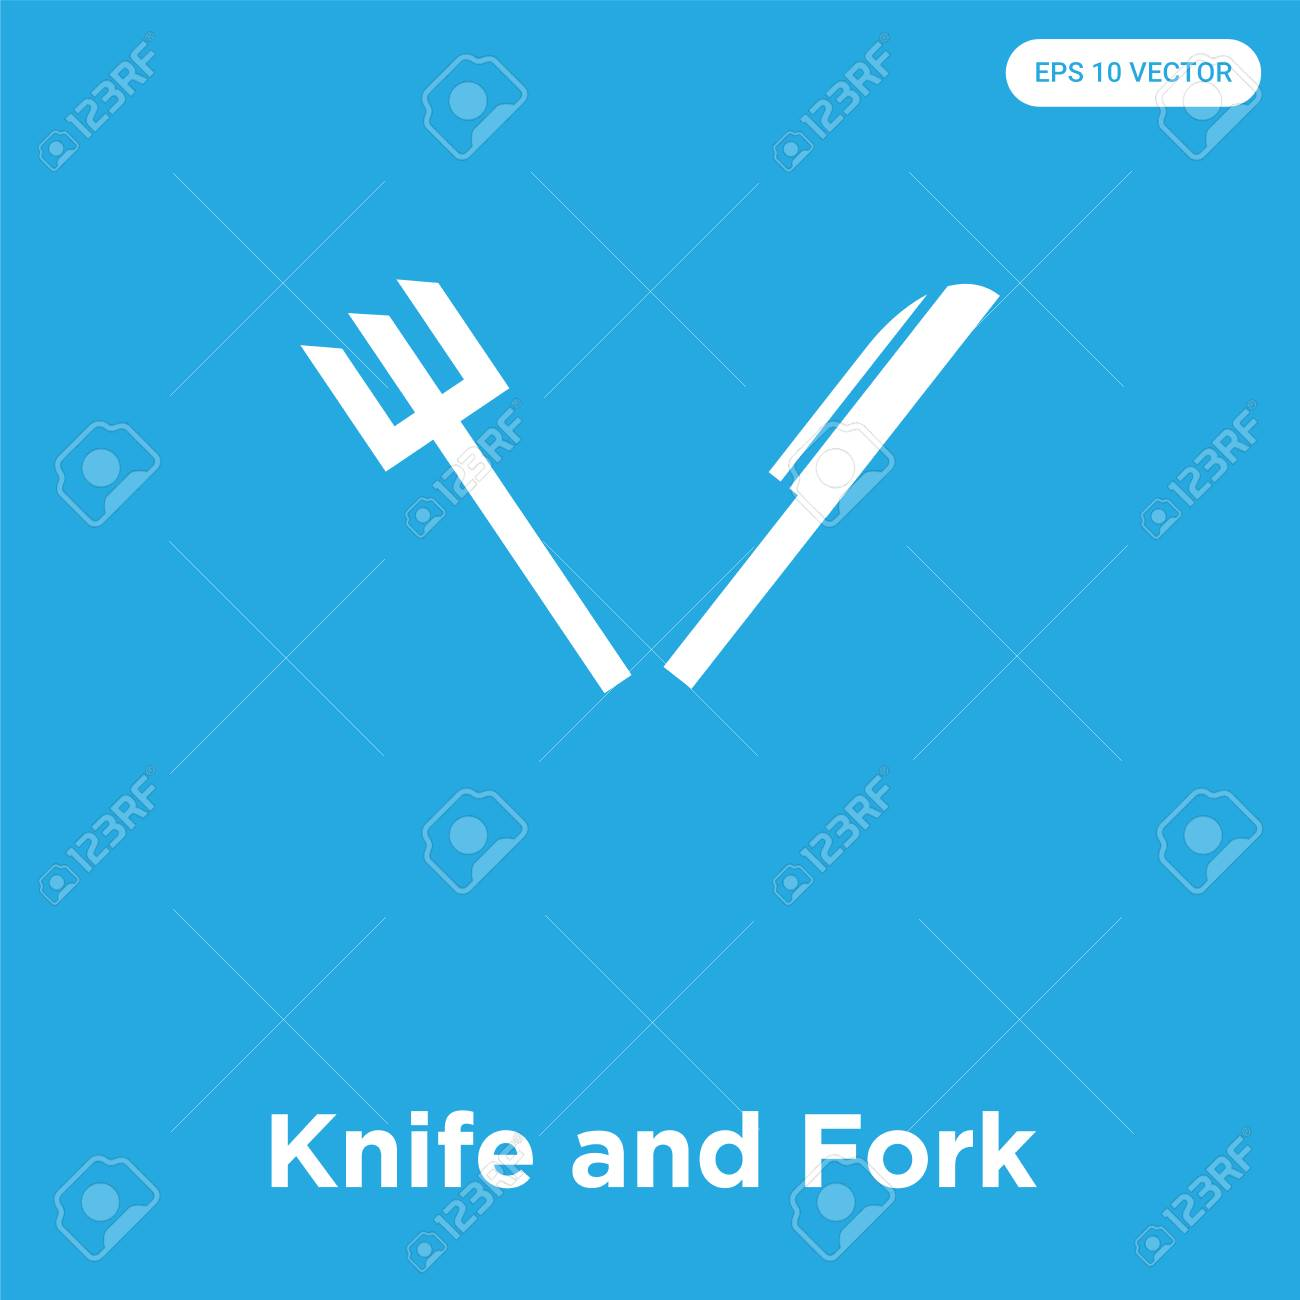 Knife and Fork vector icon isolated on blue background, sign and symbol, Knife and Fork icons collection - 114806110